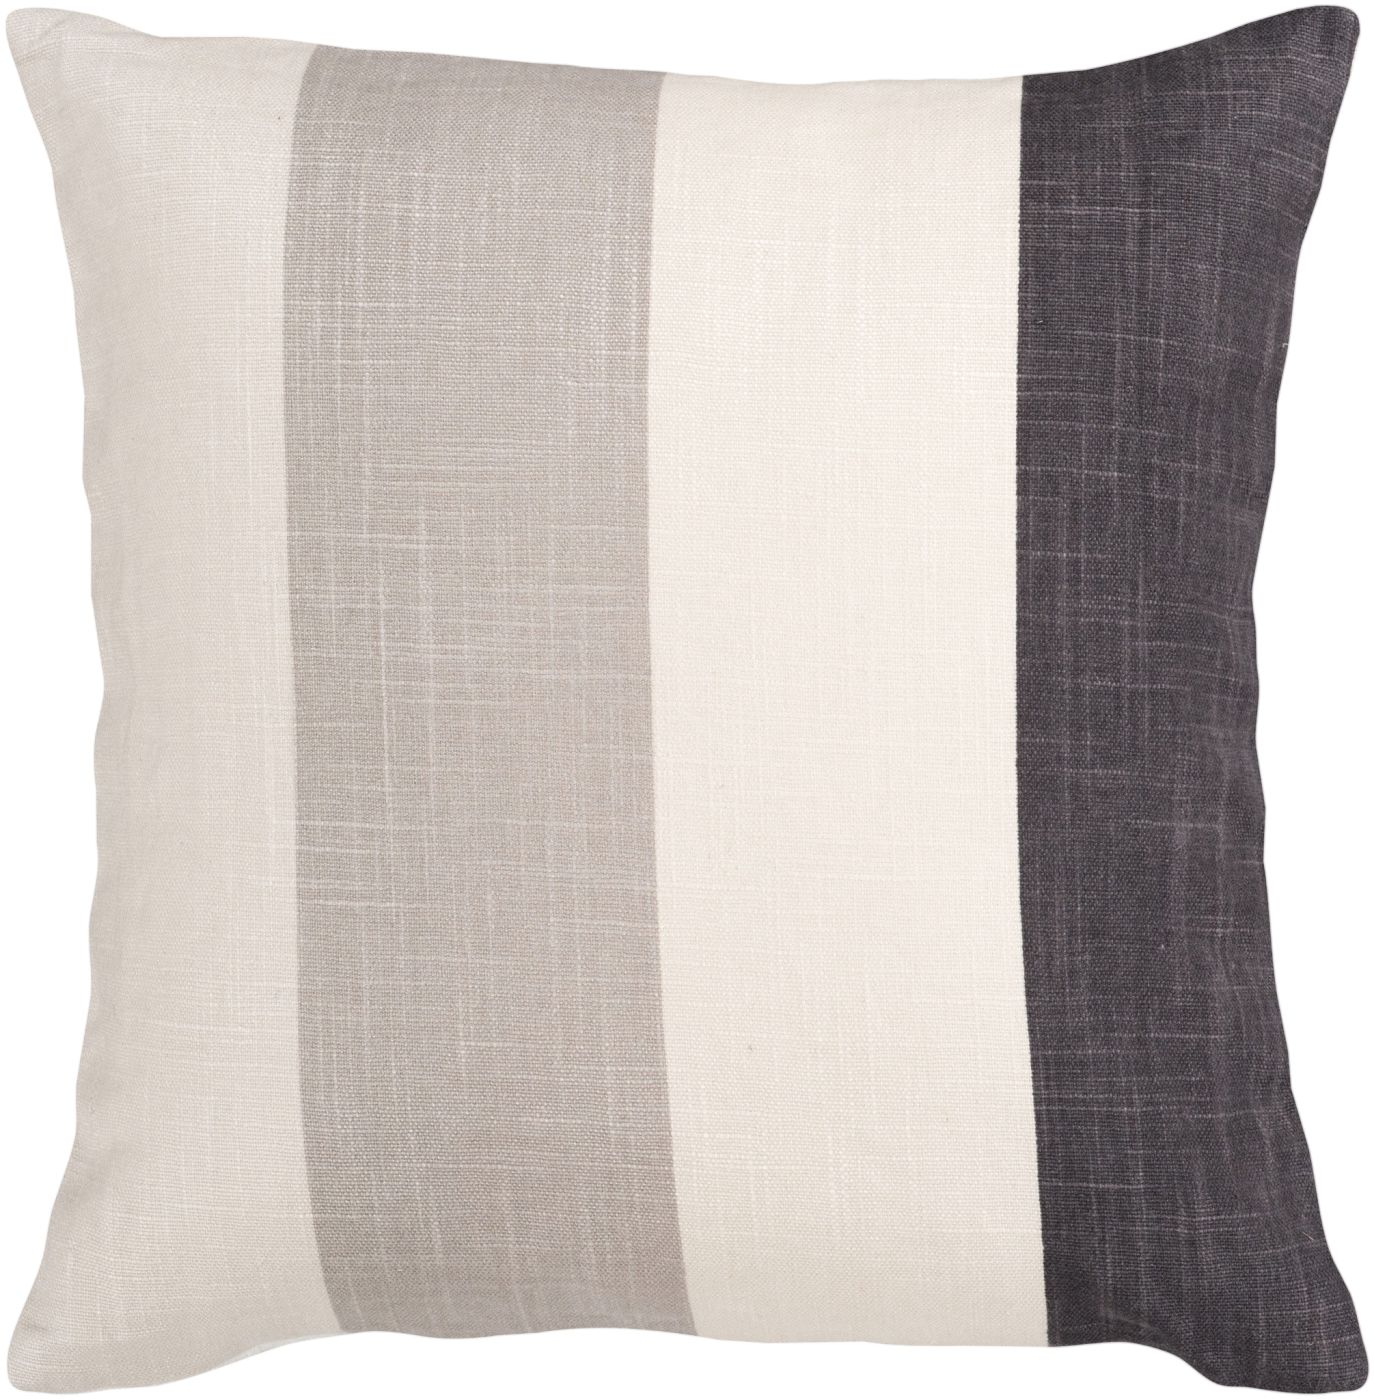 Surya Simple Stripe Throw Pillow Neutral, Black JS011-1818D. Only $45.60 at Contemporary ...